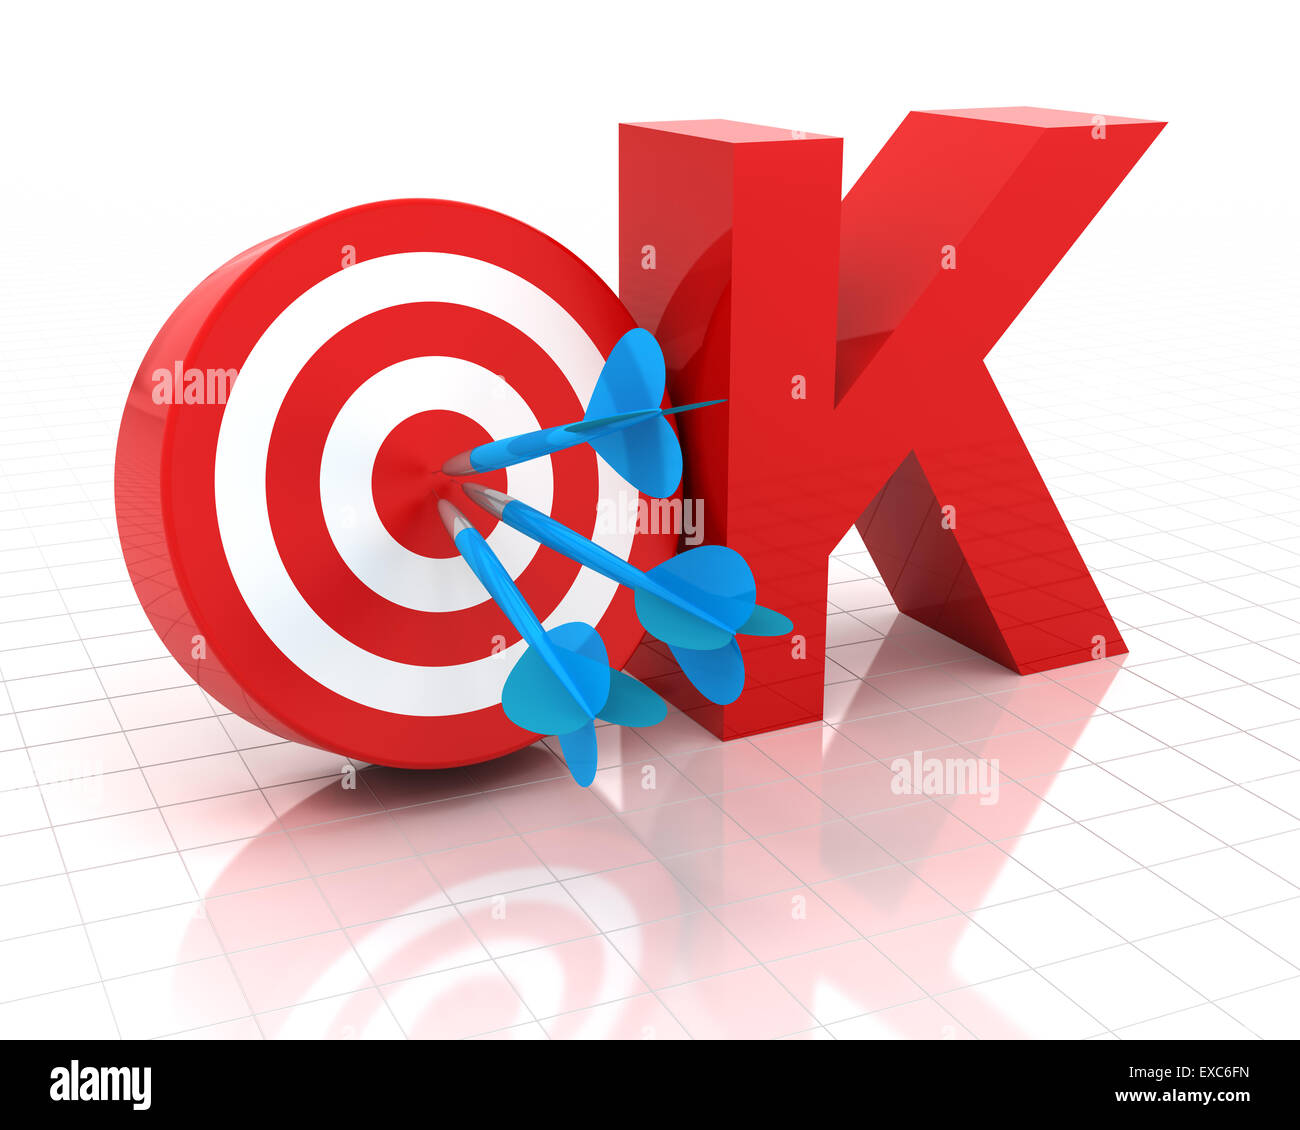 Okay symbol with target, 3d render - Stock Image